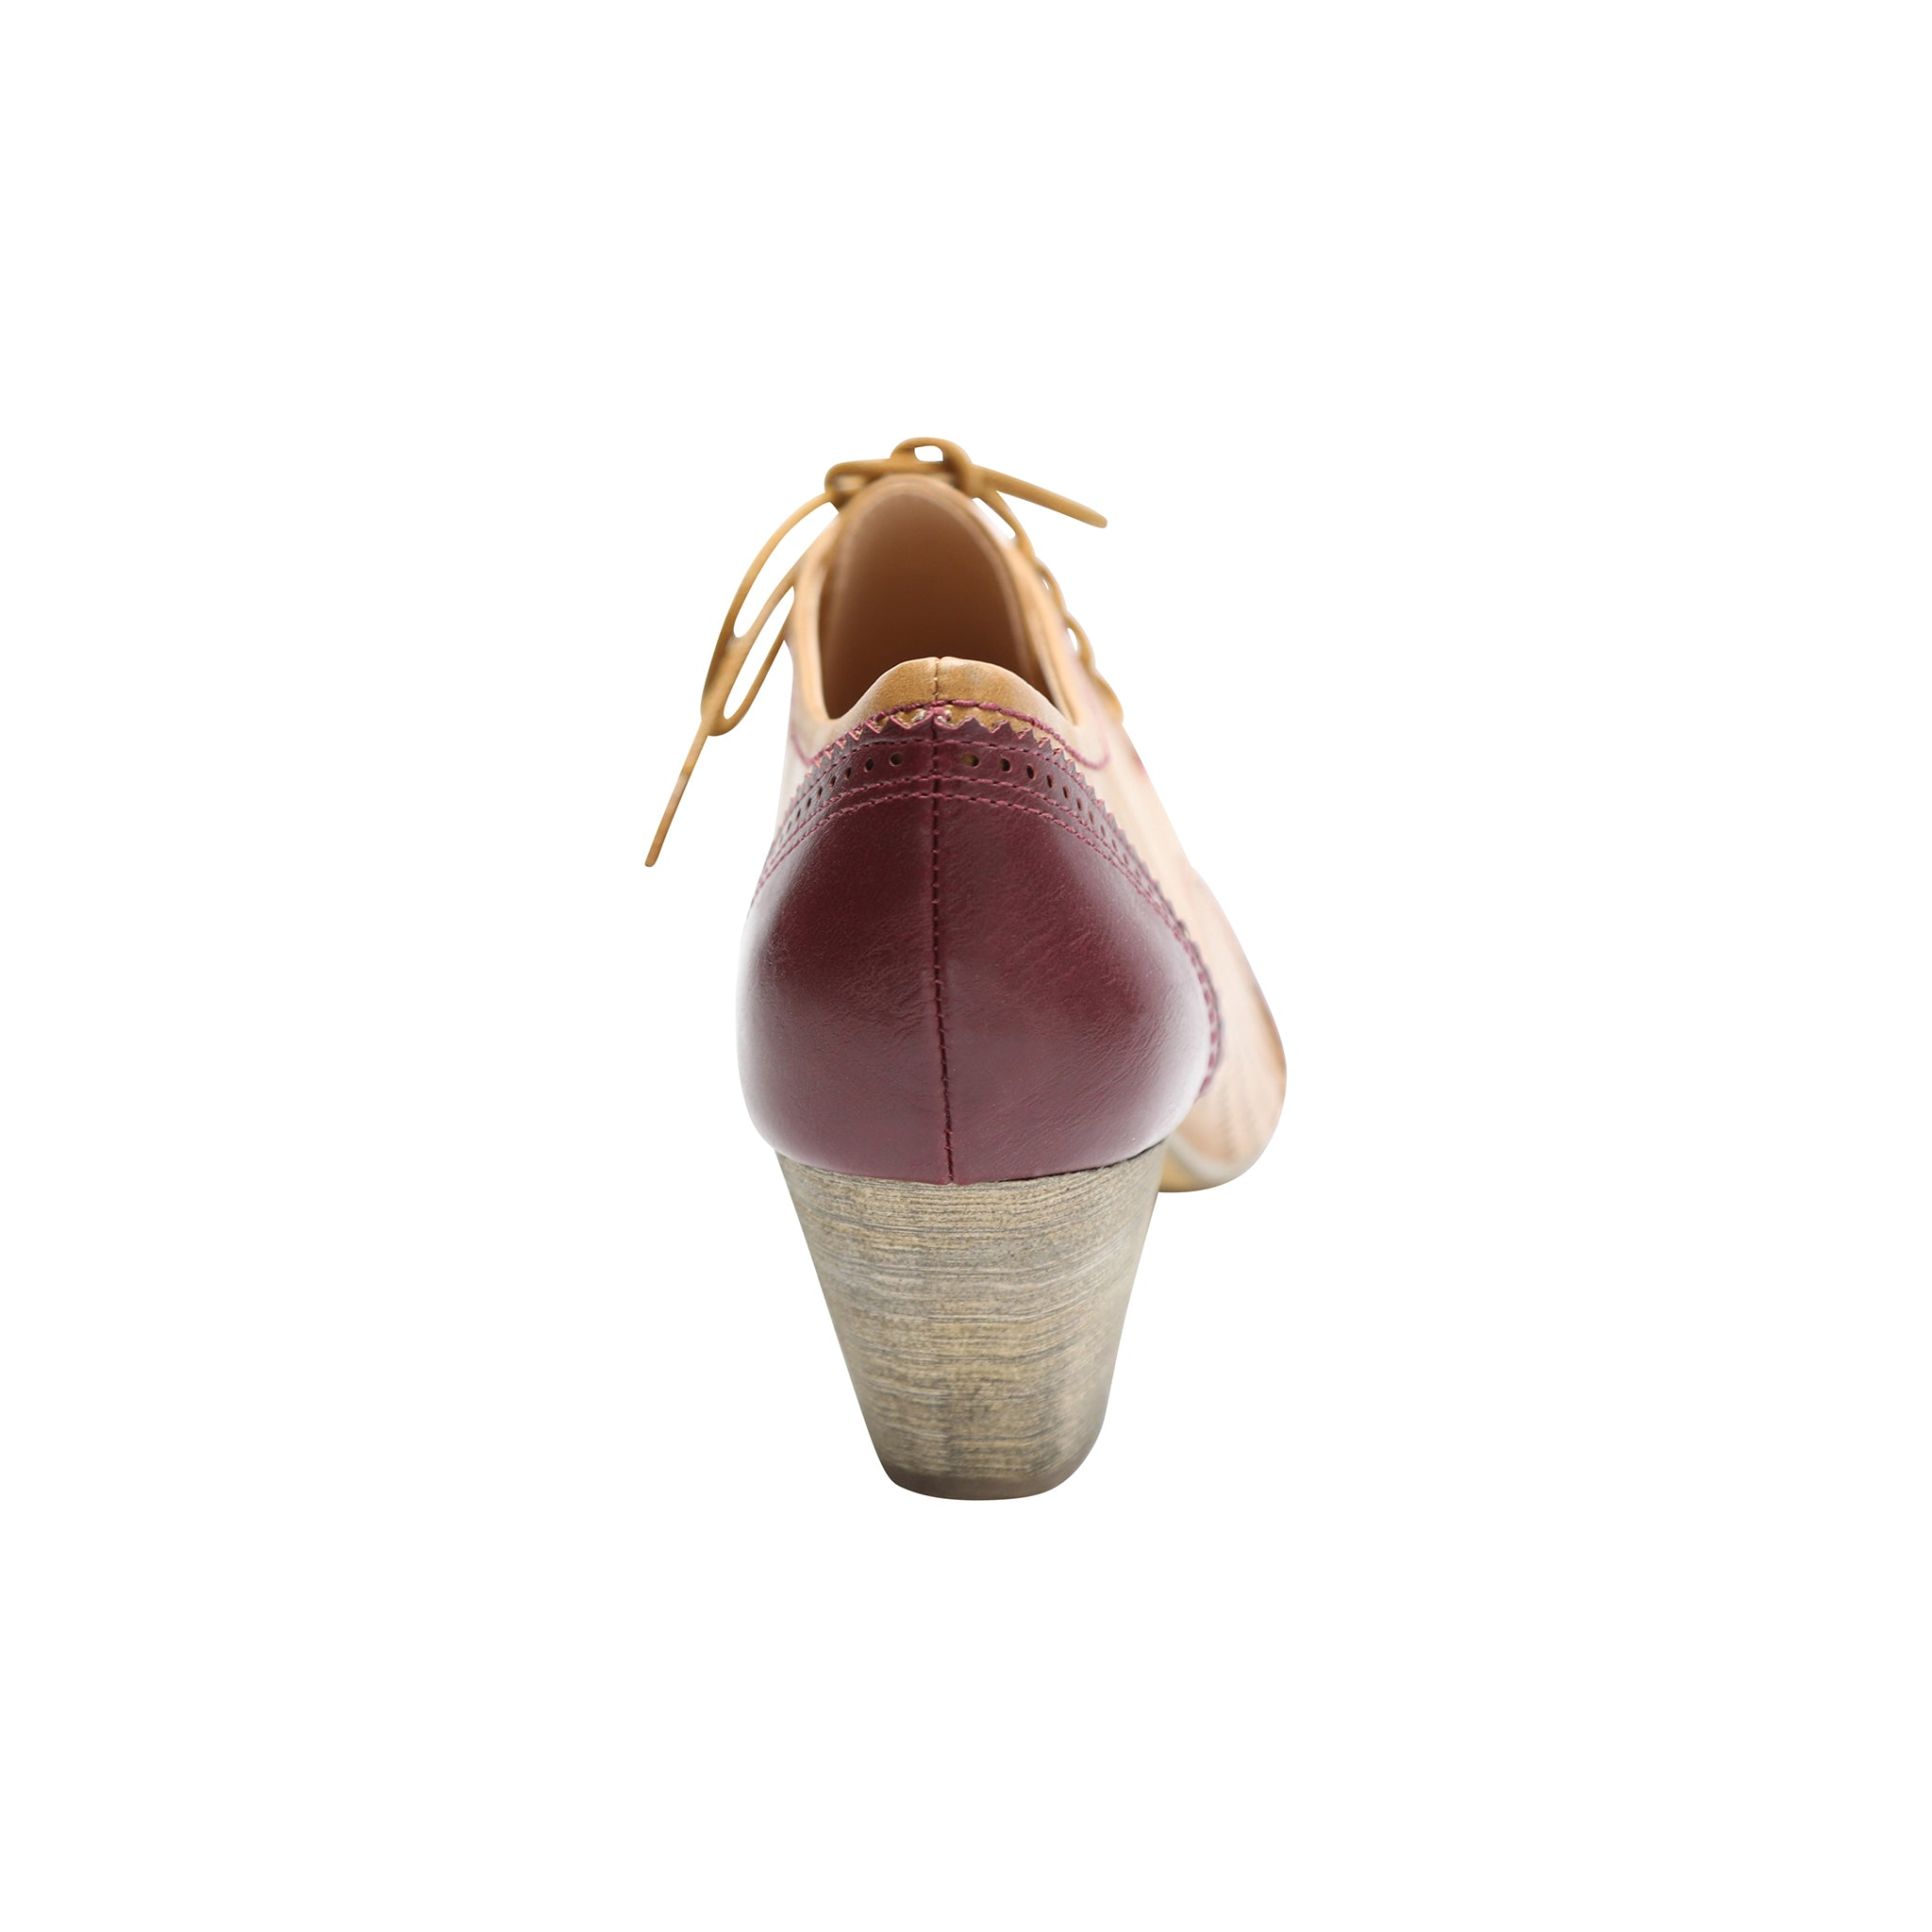 Selma by Dolce Nome | Two-Tone Oxford Pumps in Burgundy/Nude (back view)